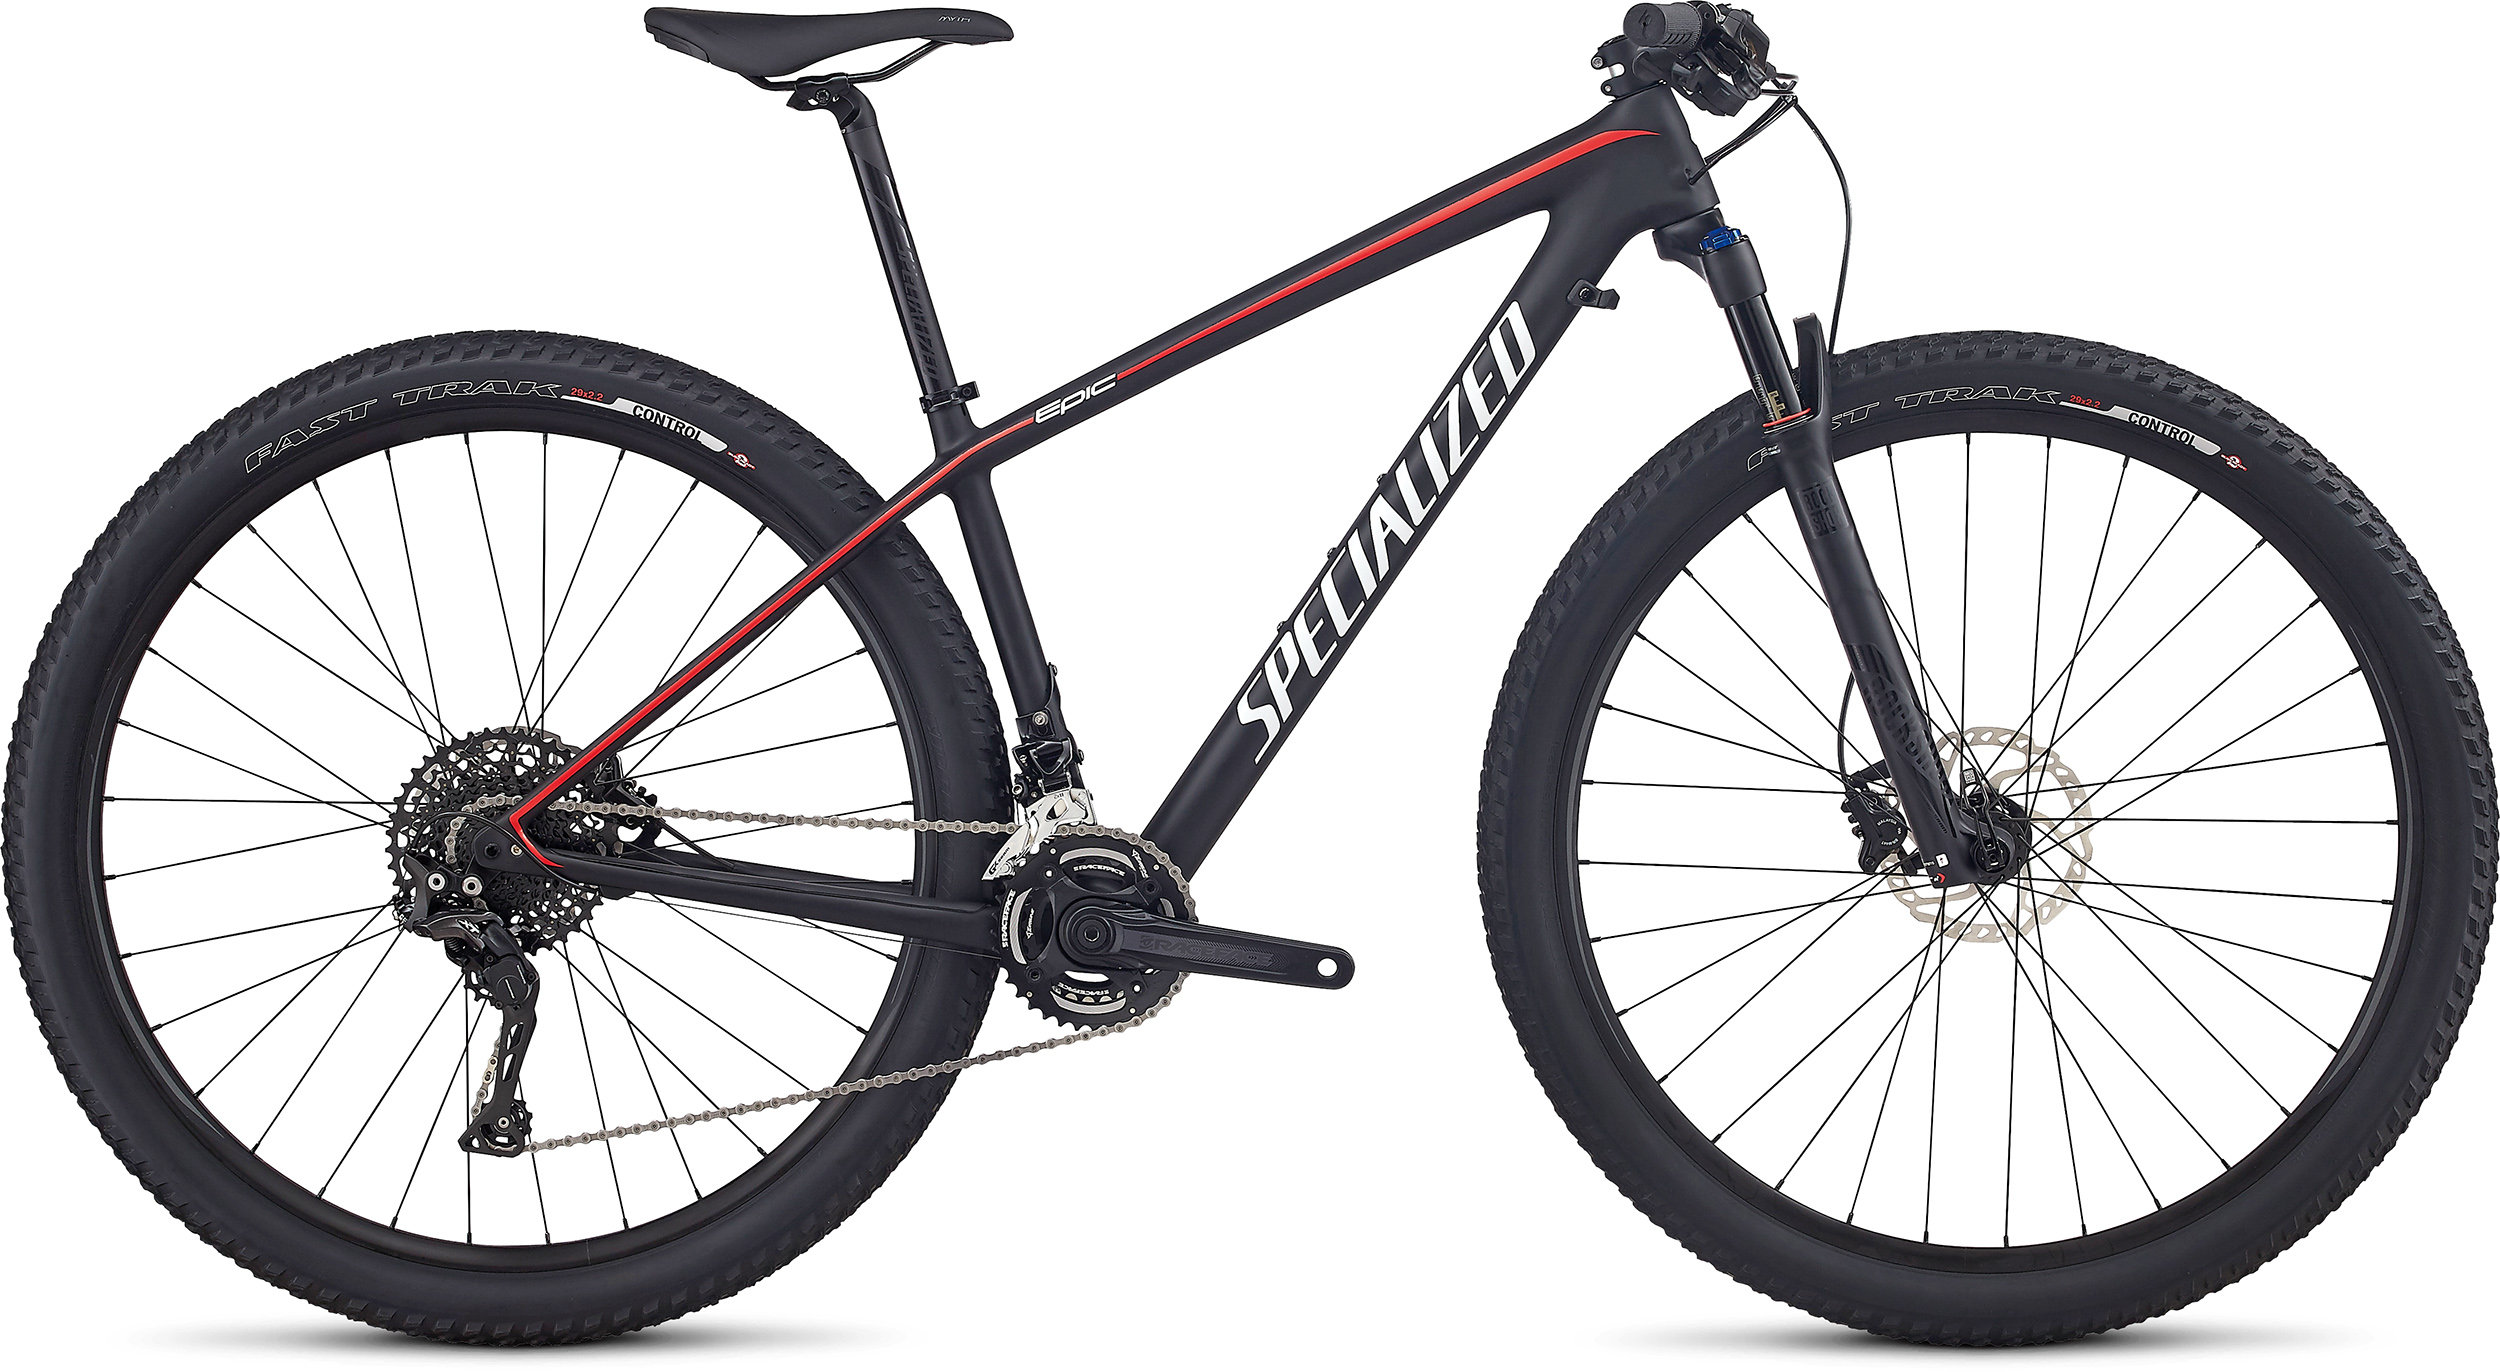 SPECIALIZED EPIC HT WMN COMP CARBON 29 TARBLK/NRDCRED/METWHTSIL M - Alpha Bikes